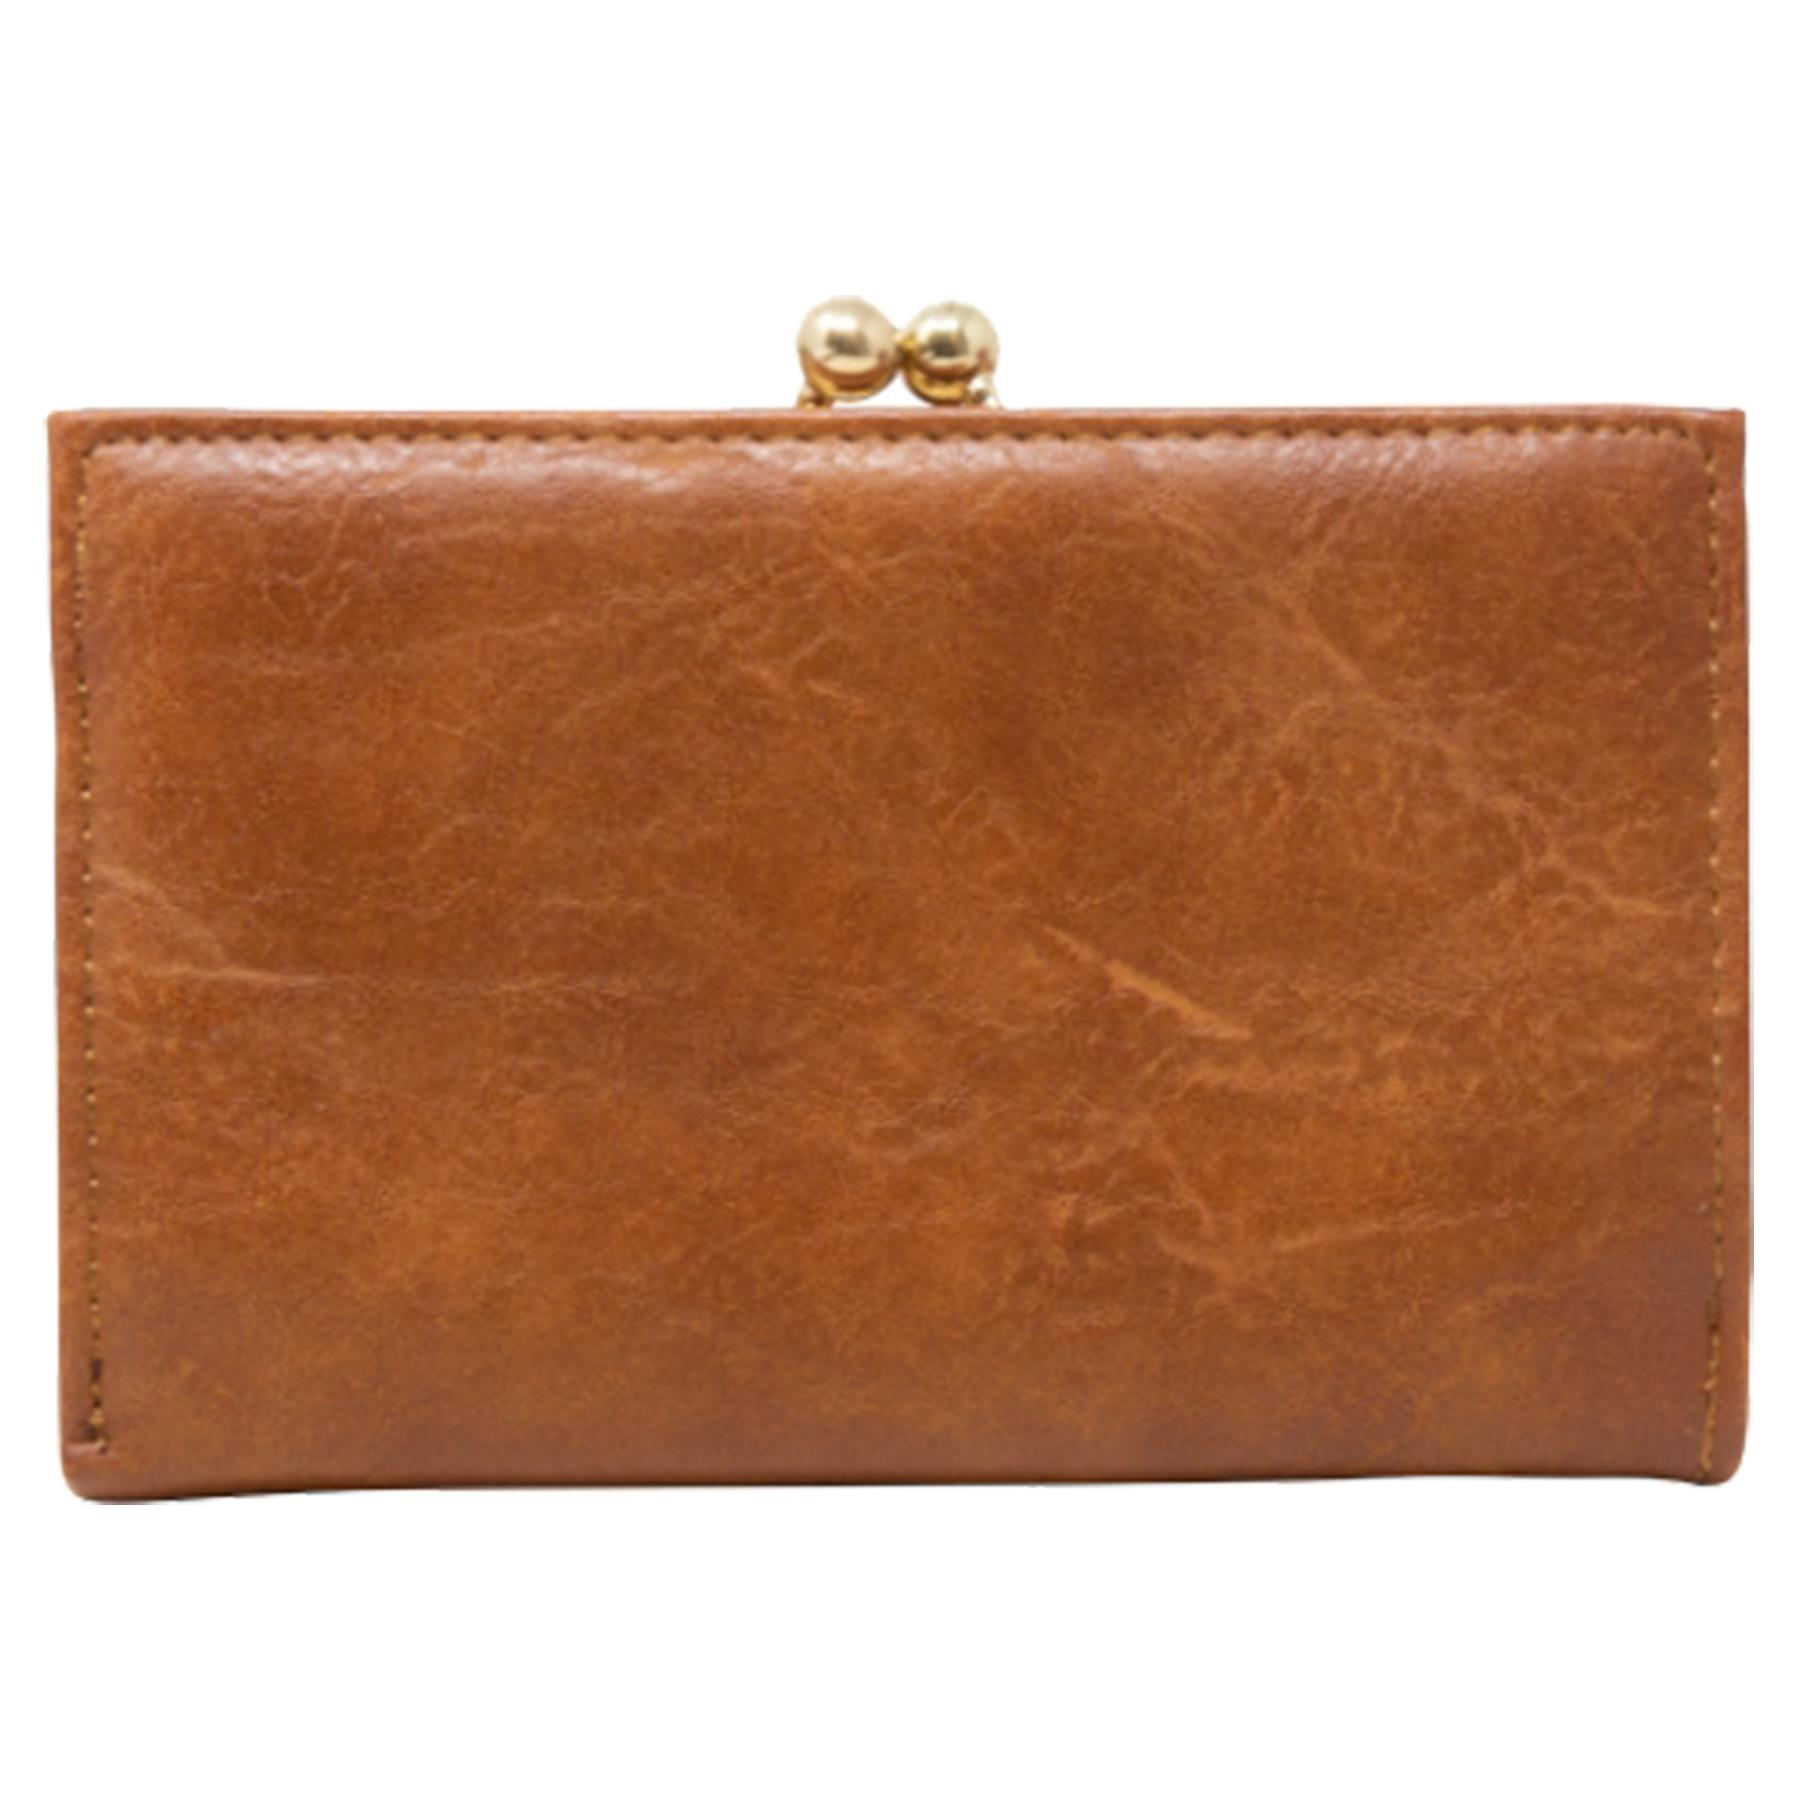 New-Synthetic-Leather-Kiss-Lock-Compartment-Ladies-Casual-Wallet-Purse thumbnail 12